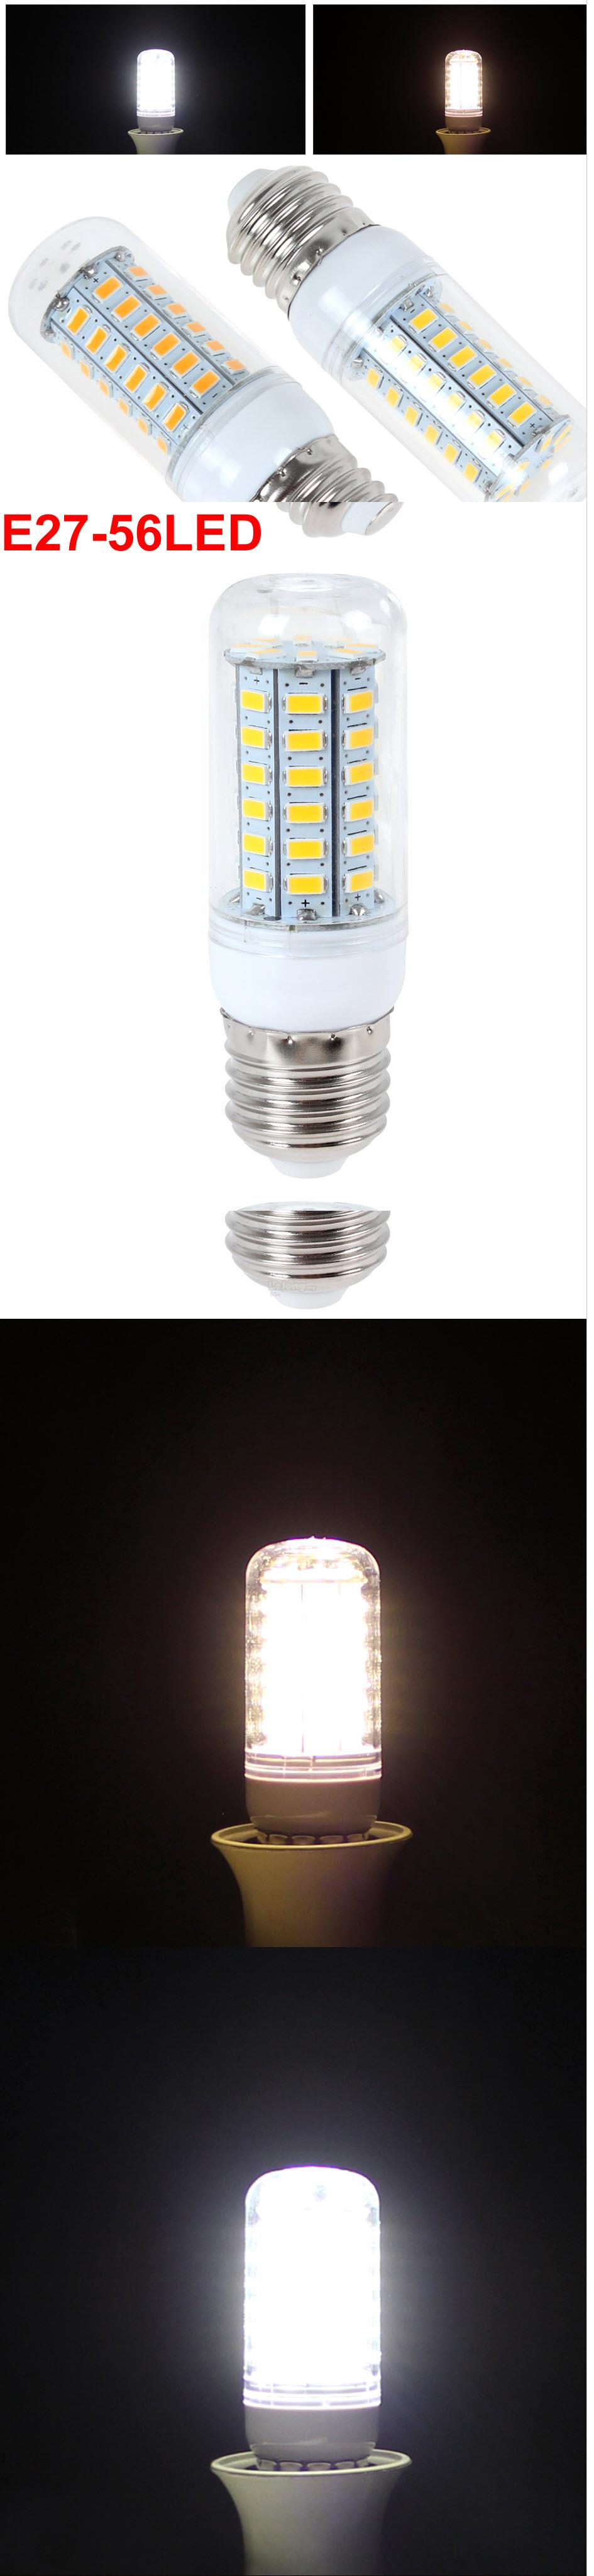 15W LED SMD 5730 Mini Light Bulb E27 Base Type